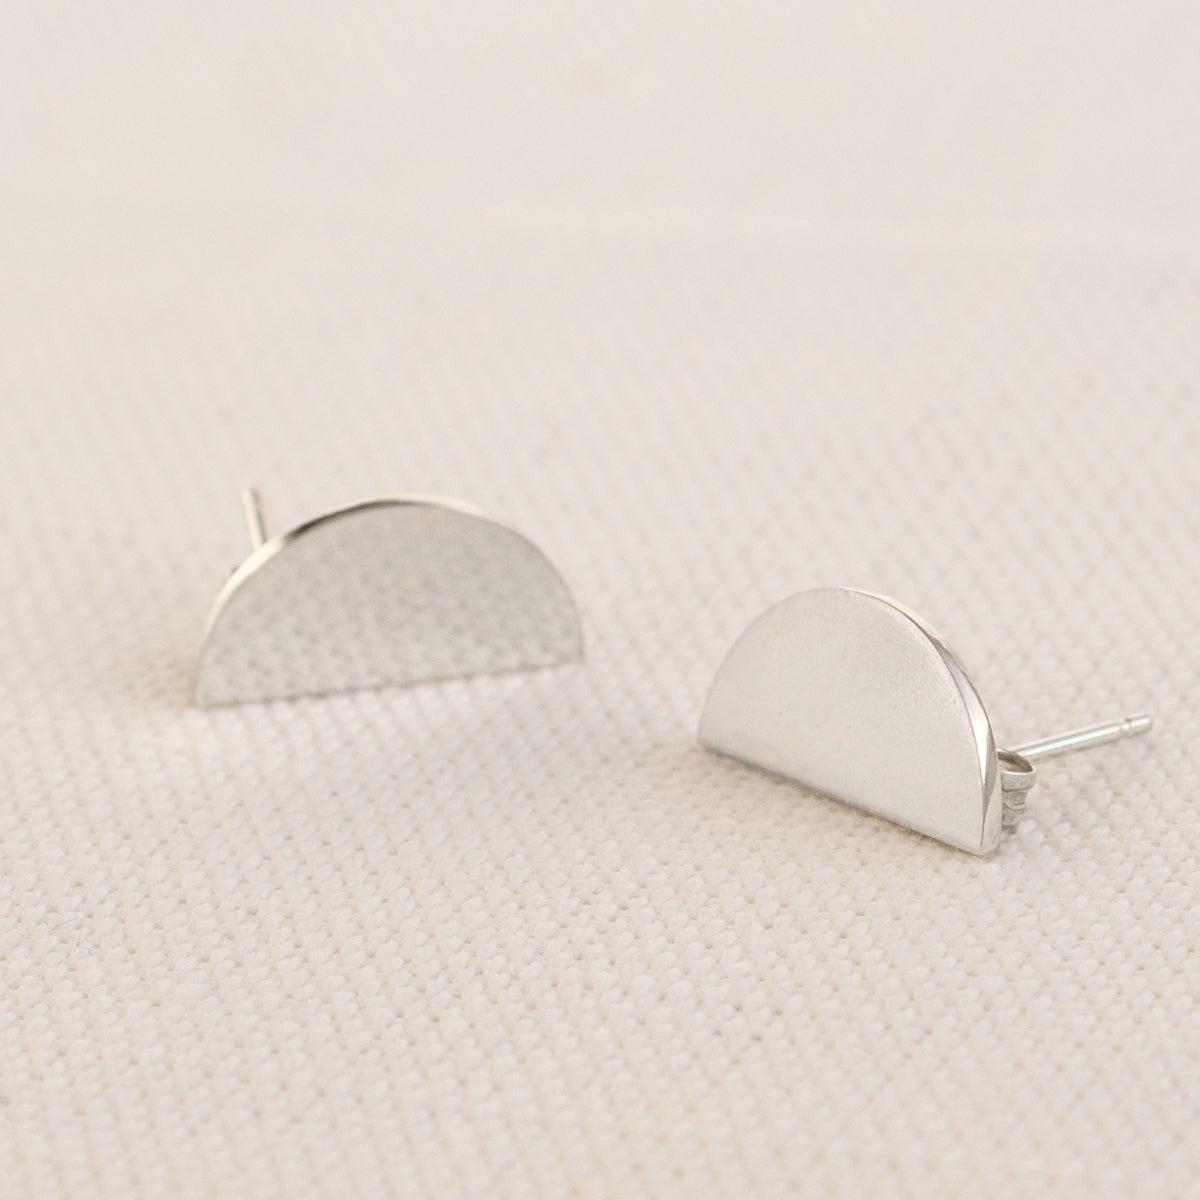 The Boyscouts - Silver Convex Earrings